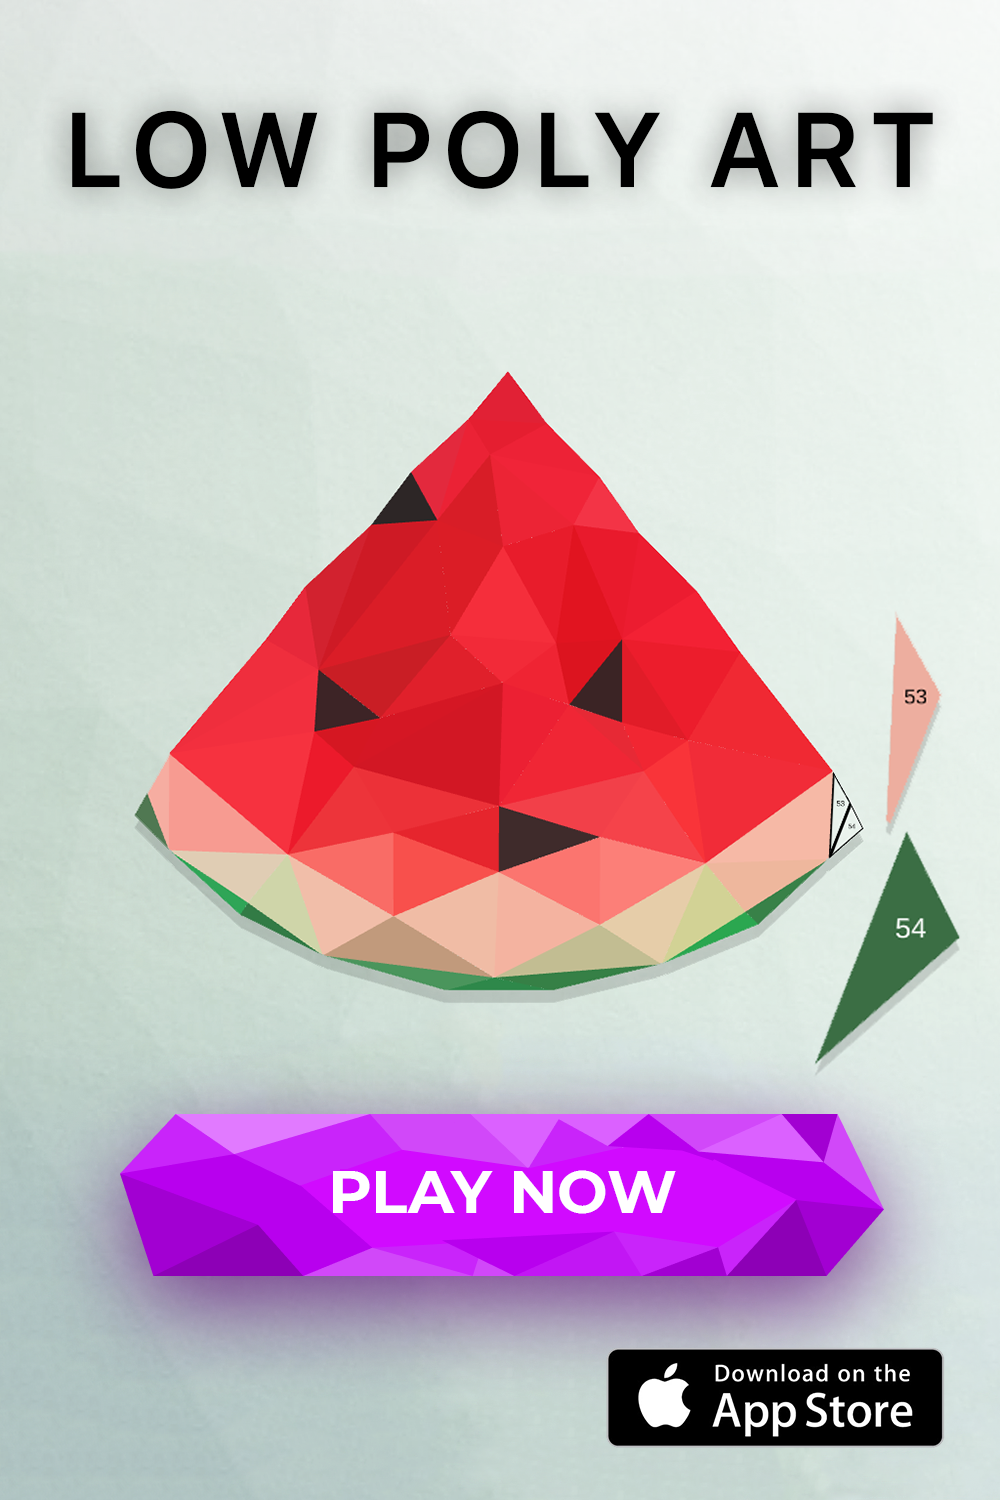 Low Poly is an amazing puzzle game that reveals creativity